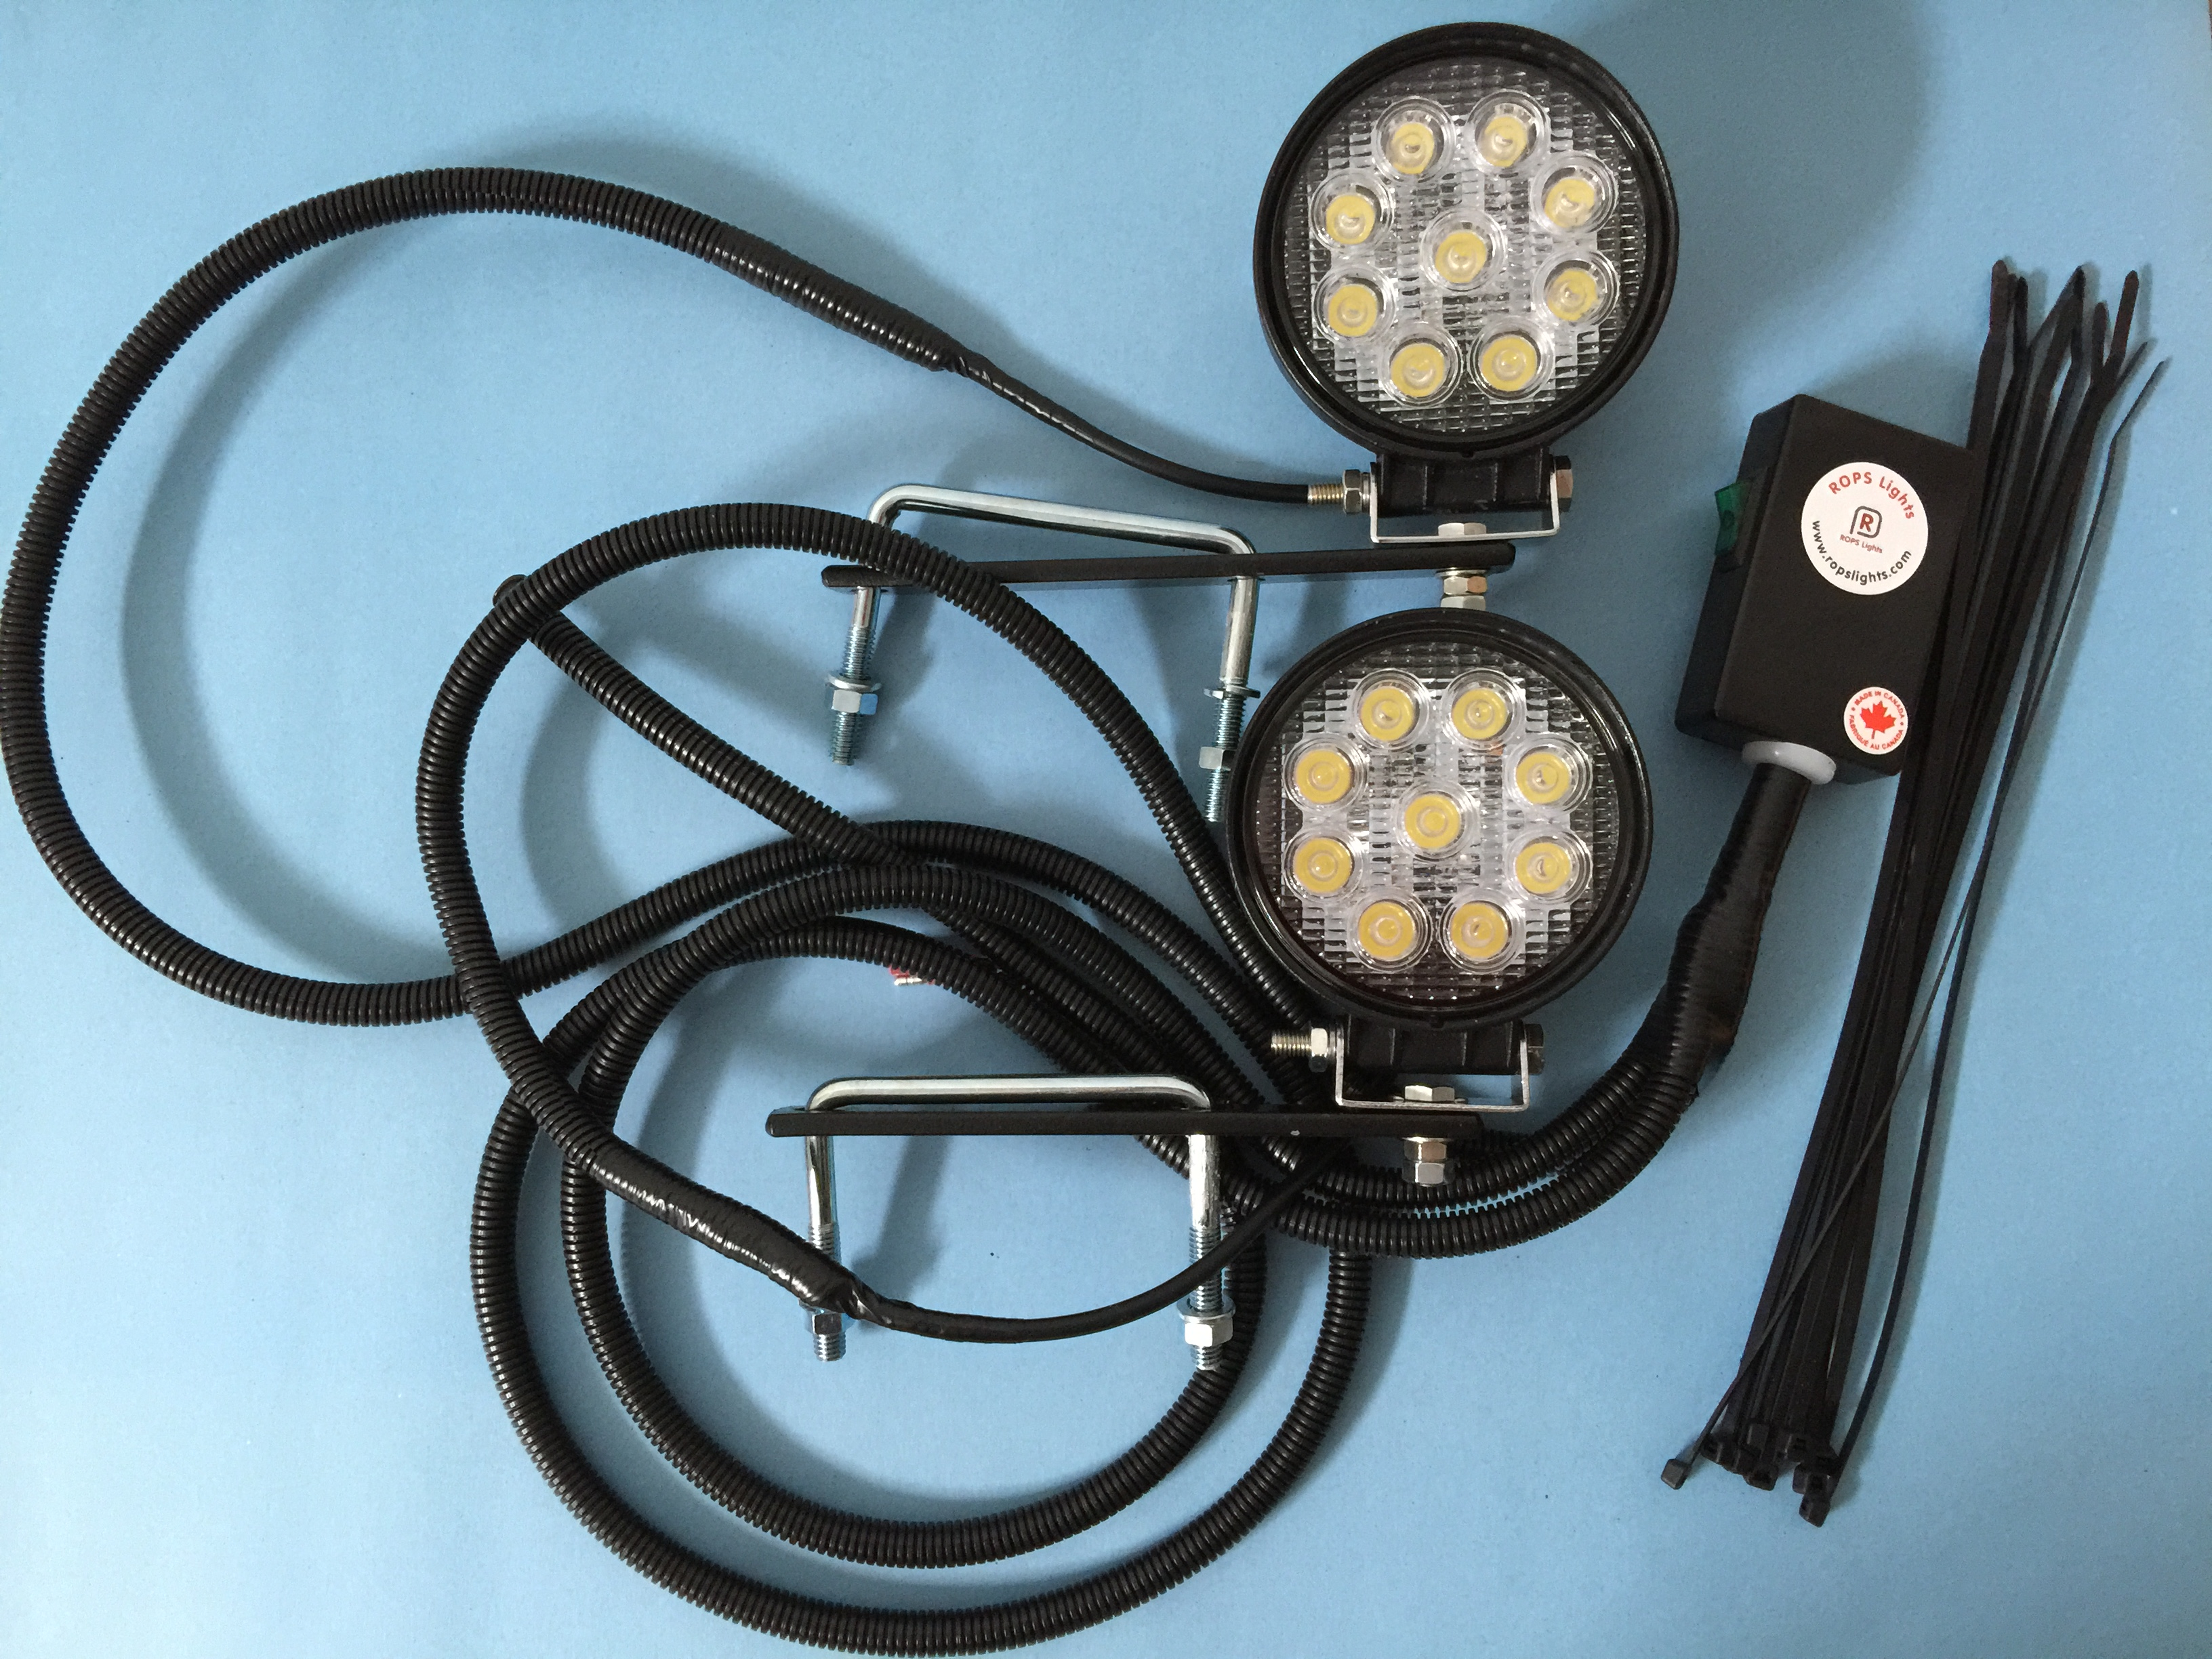 New Holland Tractor Led Lights : New holland ls tractor rops lights led worklight kits